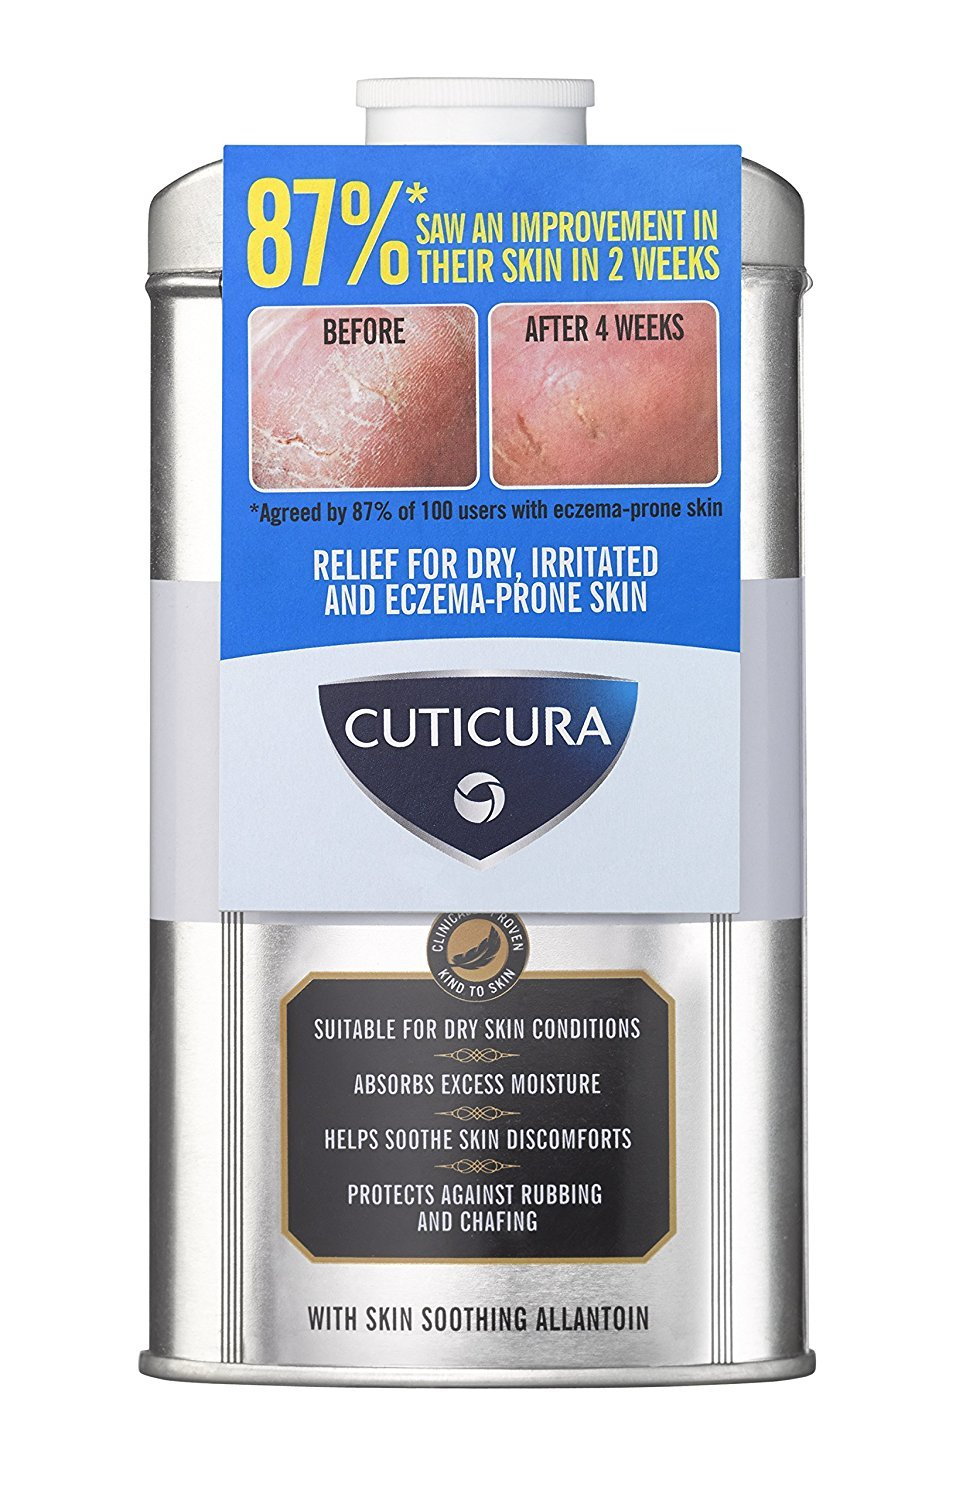 Cuticura Mildly Medicated Talcum Powder 150g Keyline Brands Ltd 880476 Bath & Shower Accessories hygienic talcum powder